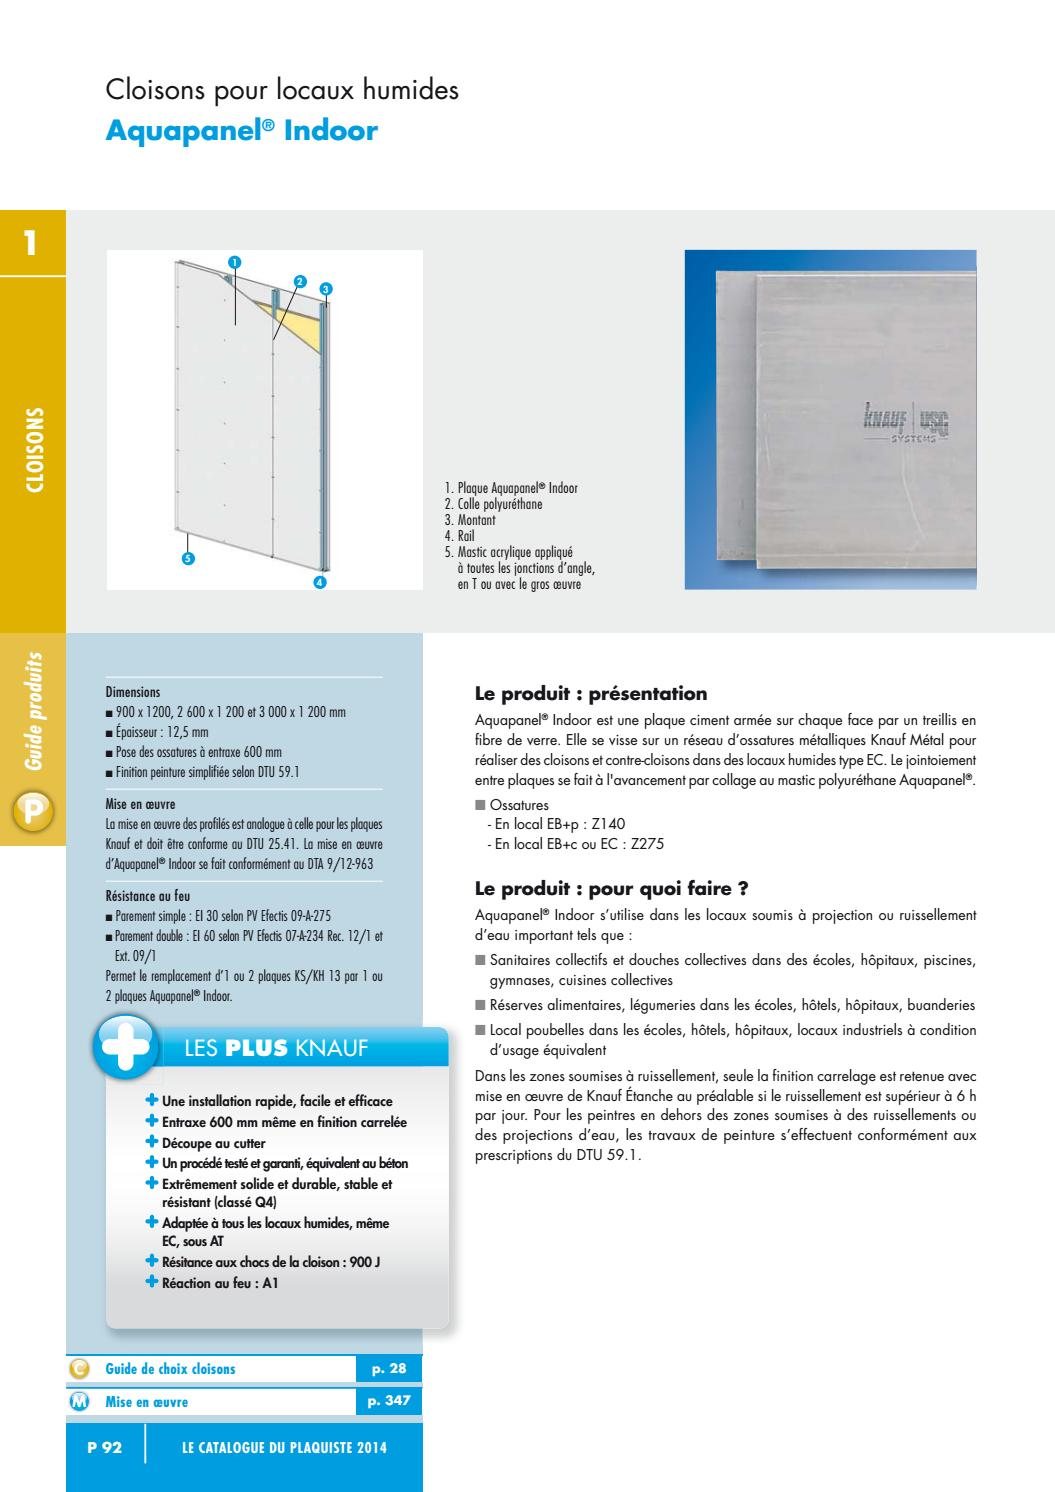 Type De Cloison Knauf 2014 Plaquiste Aquapanel Indoor